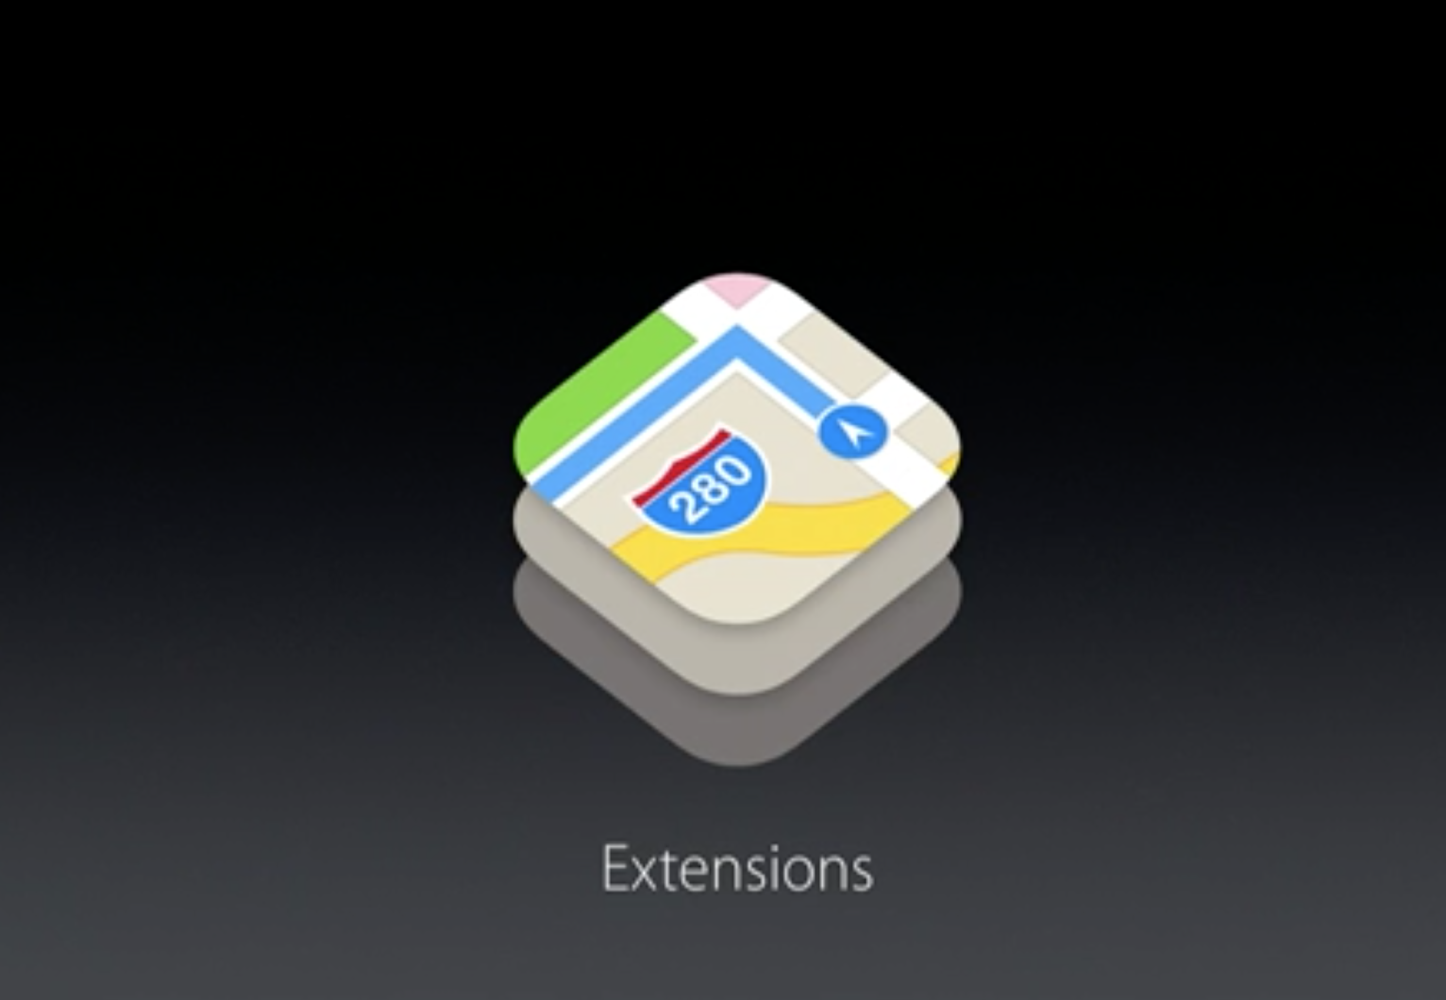 IOS 10 Apple WWDC 2016